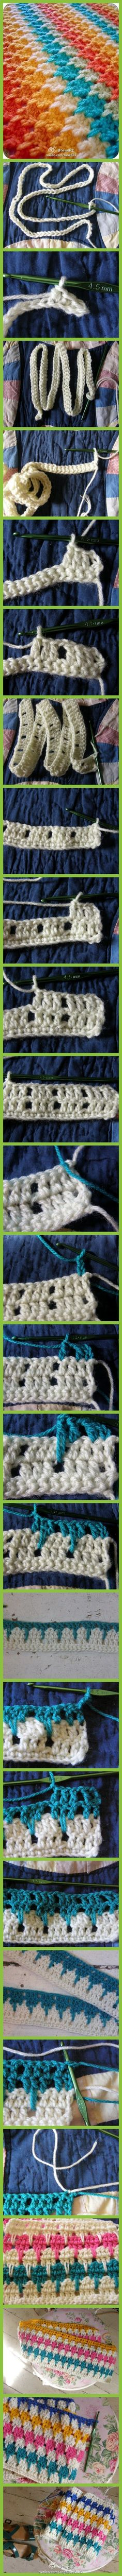 How to crochet the lark's foot stitch - great step-by-step photo tutorial